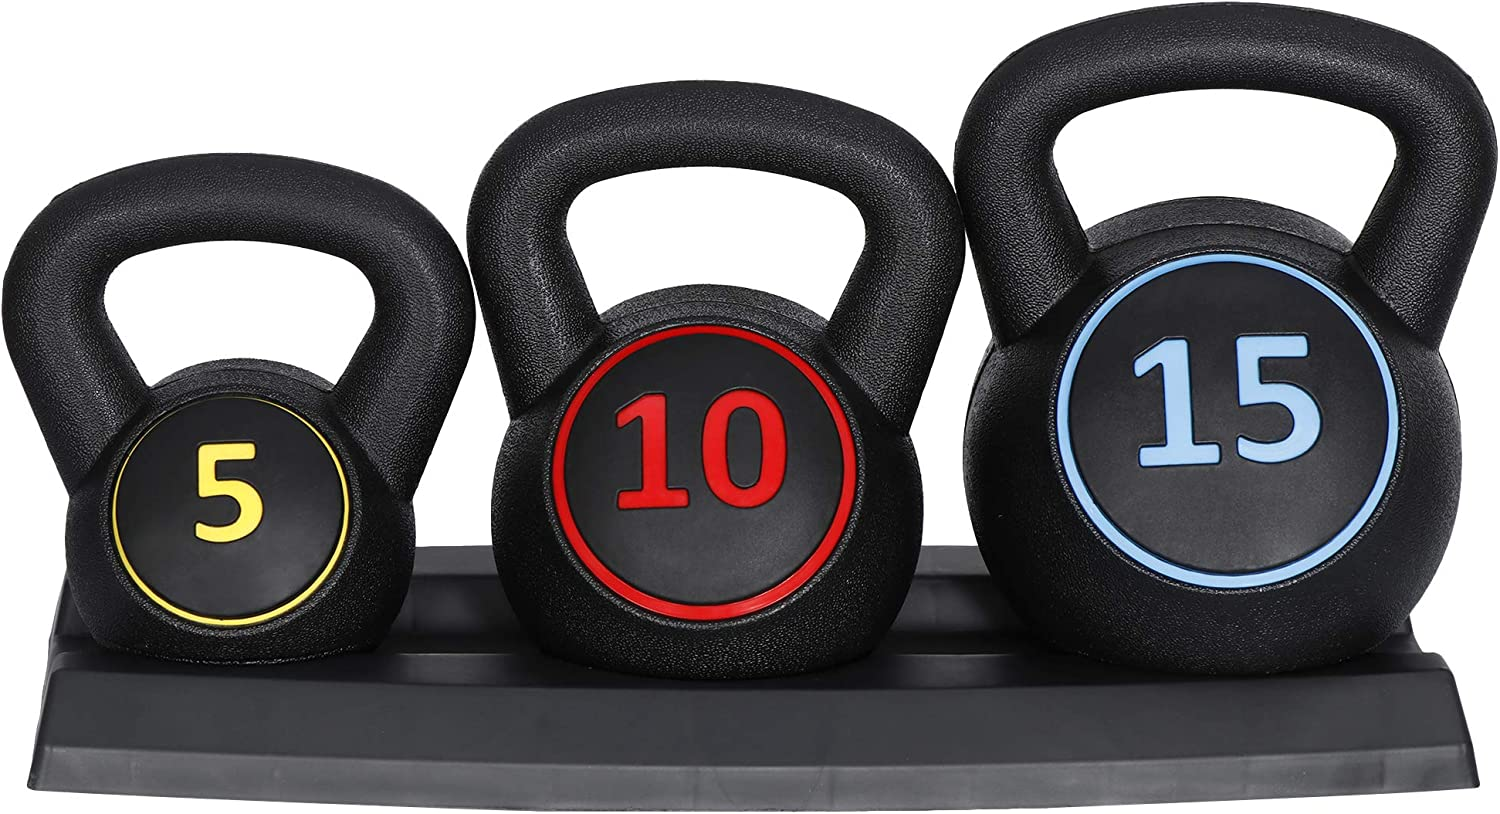 Saturnpower 3-Piece Kettlebell Set Fitness Weight 新作多数 新品 送料無料 Exercise